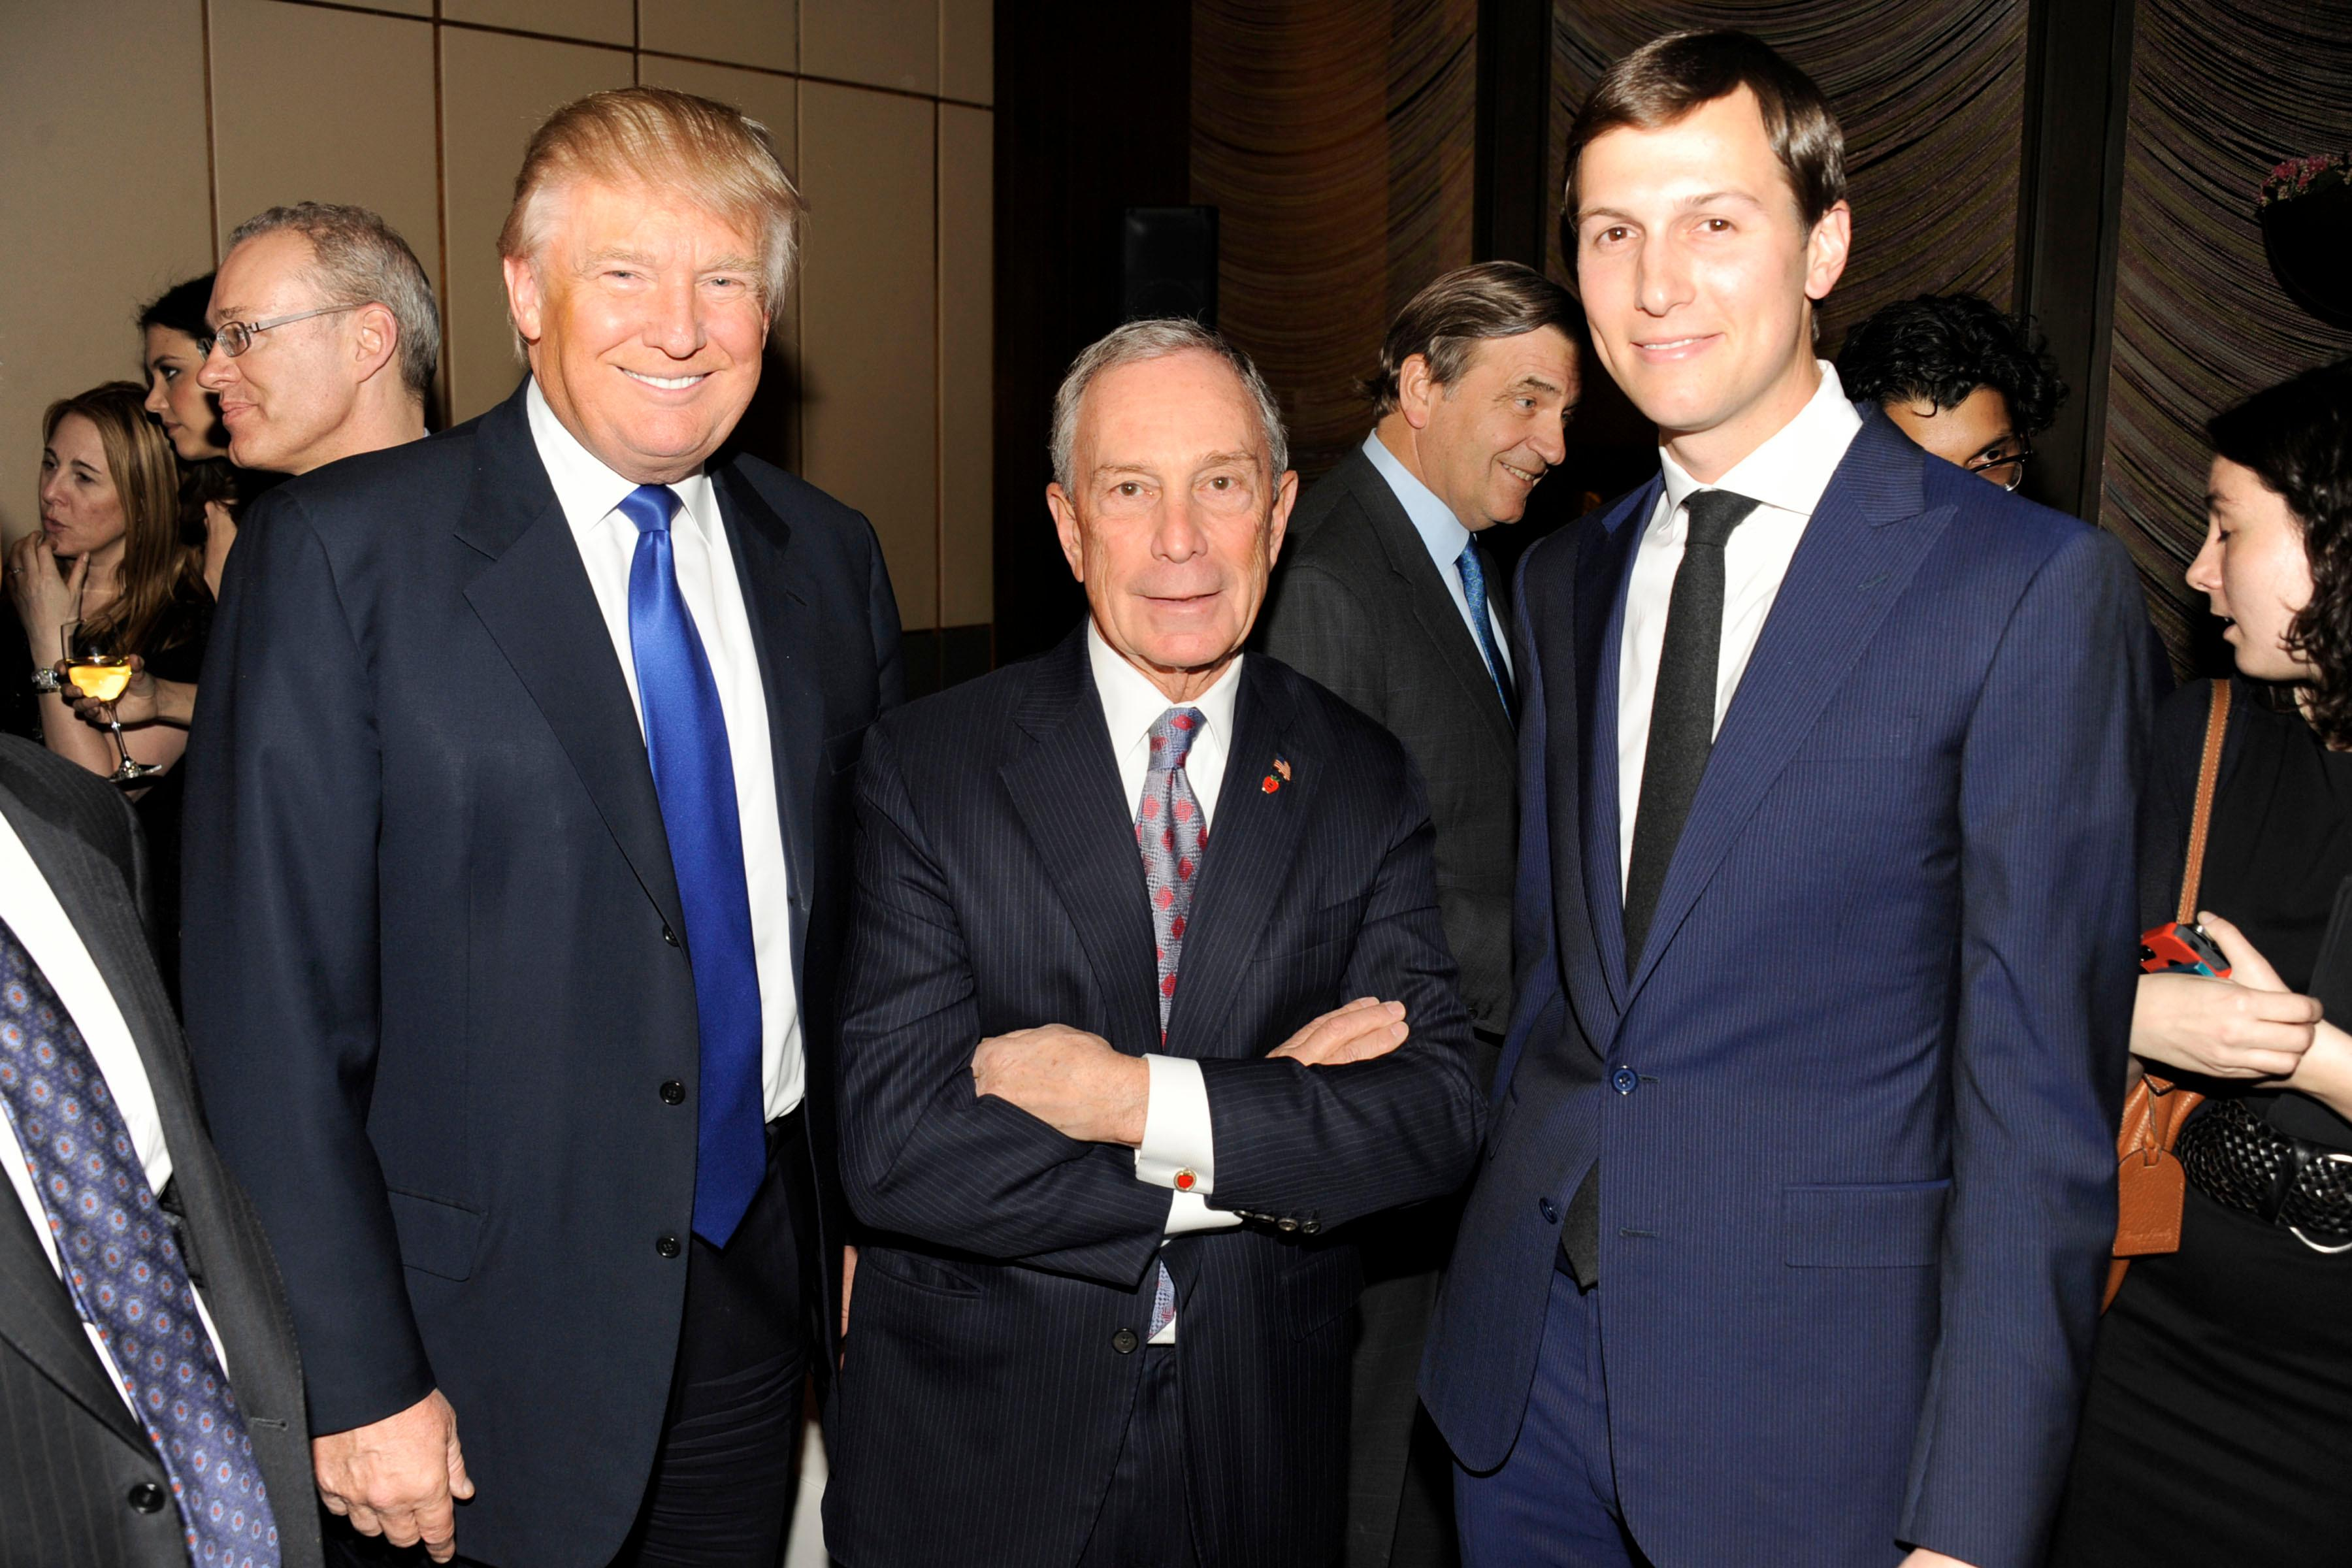 'I like theater, dining and chasing women': Mike Bloomberg in his own words